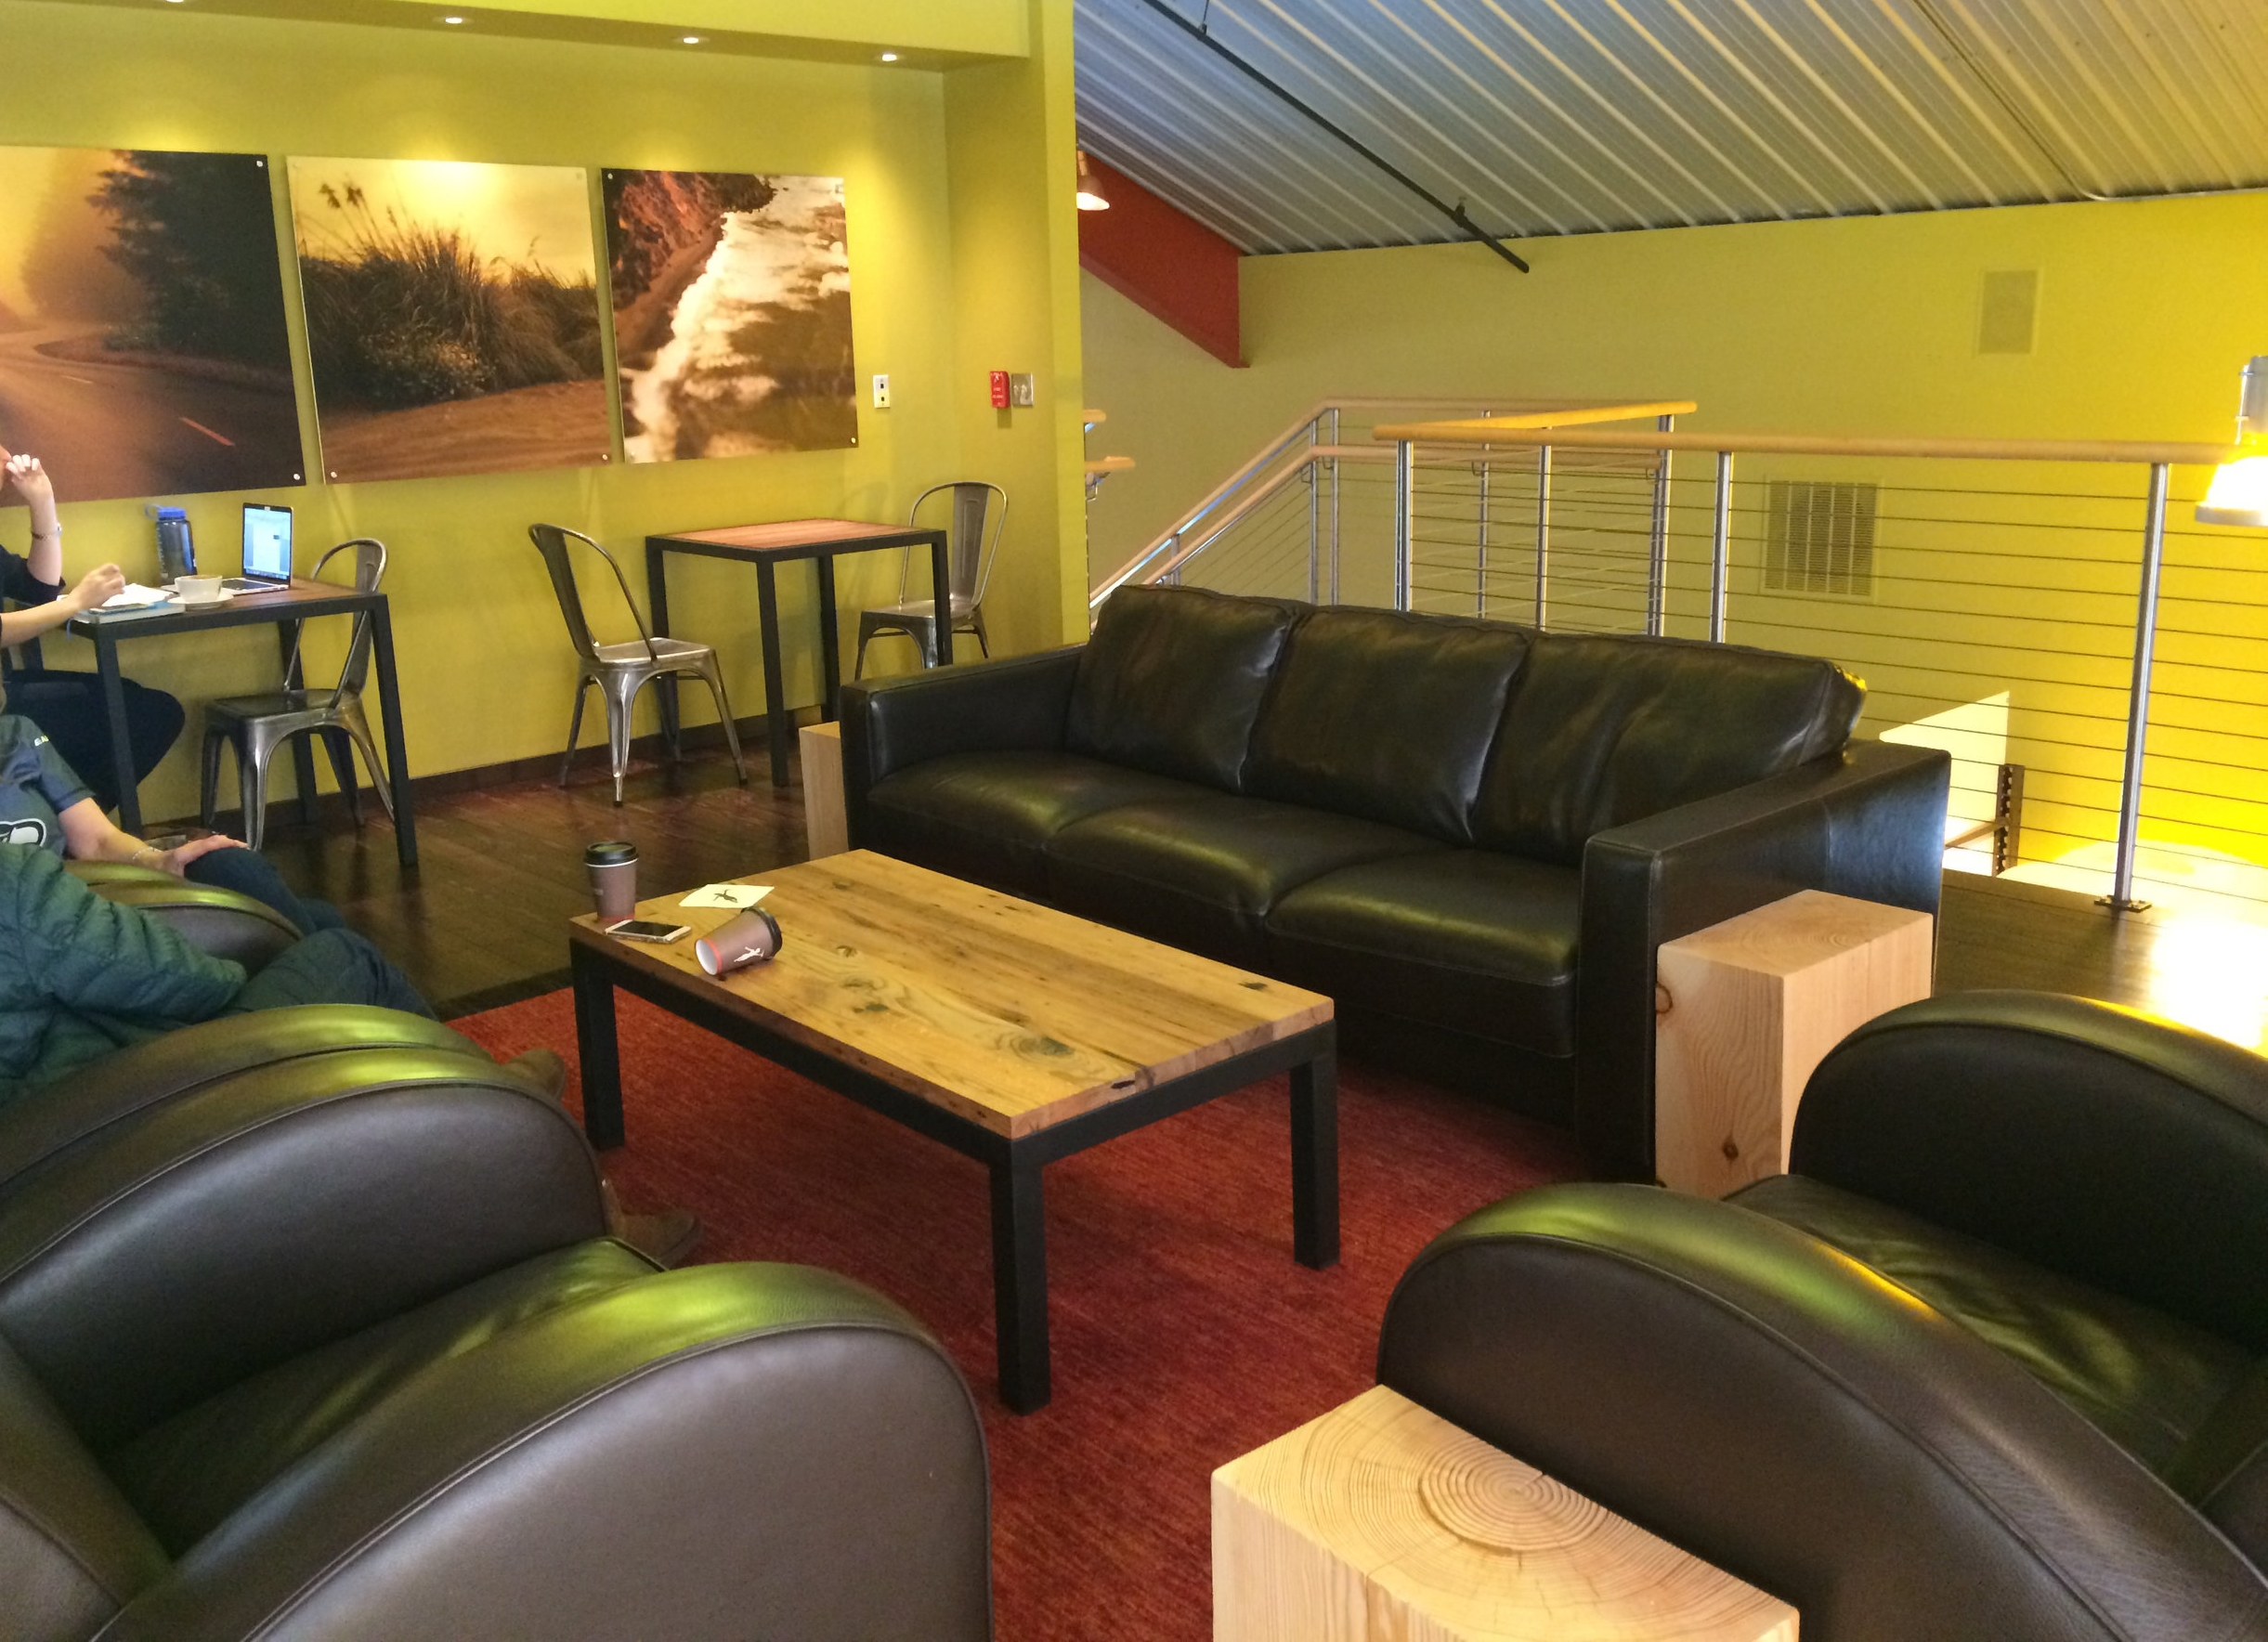 Enjoy your perfect cup in one of these super soft leather sofas or club chairs. Feel free to linger but be careful not to get so comfy you fall asleep!